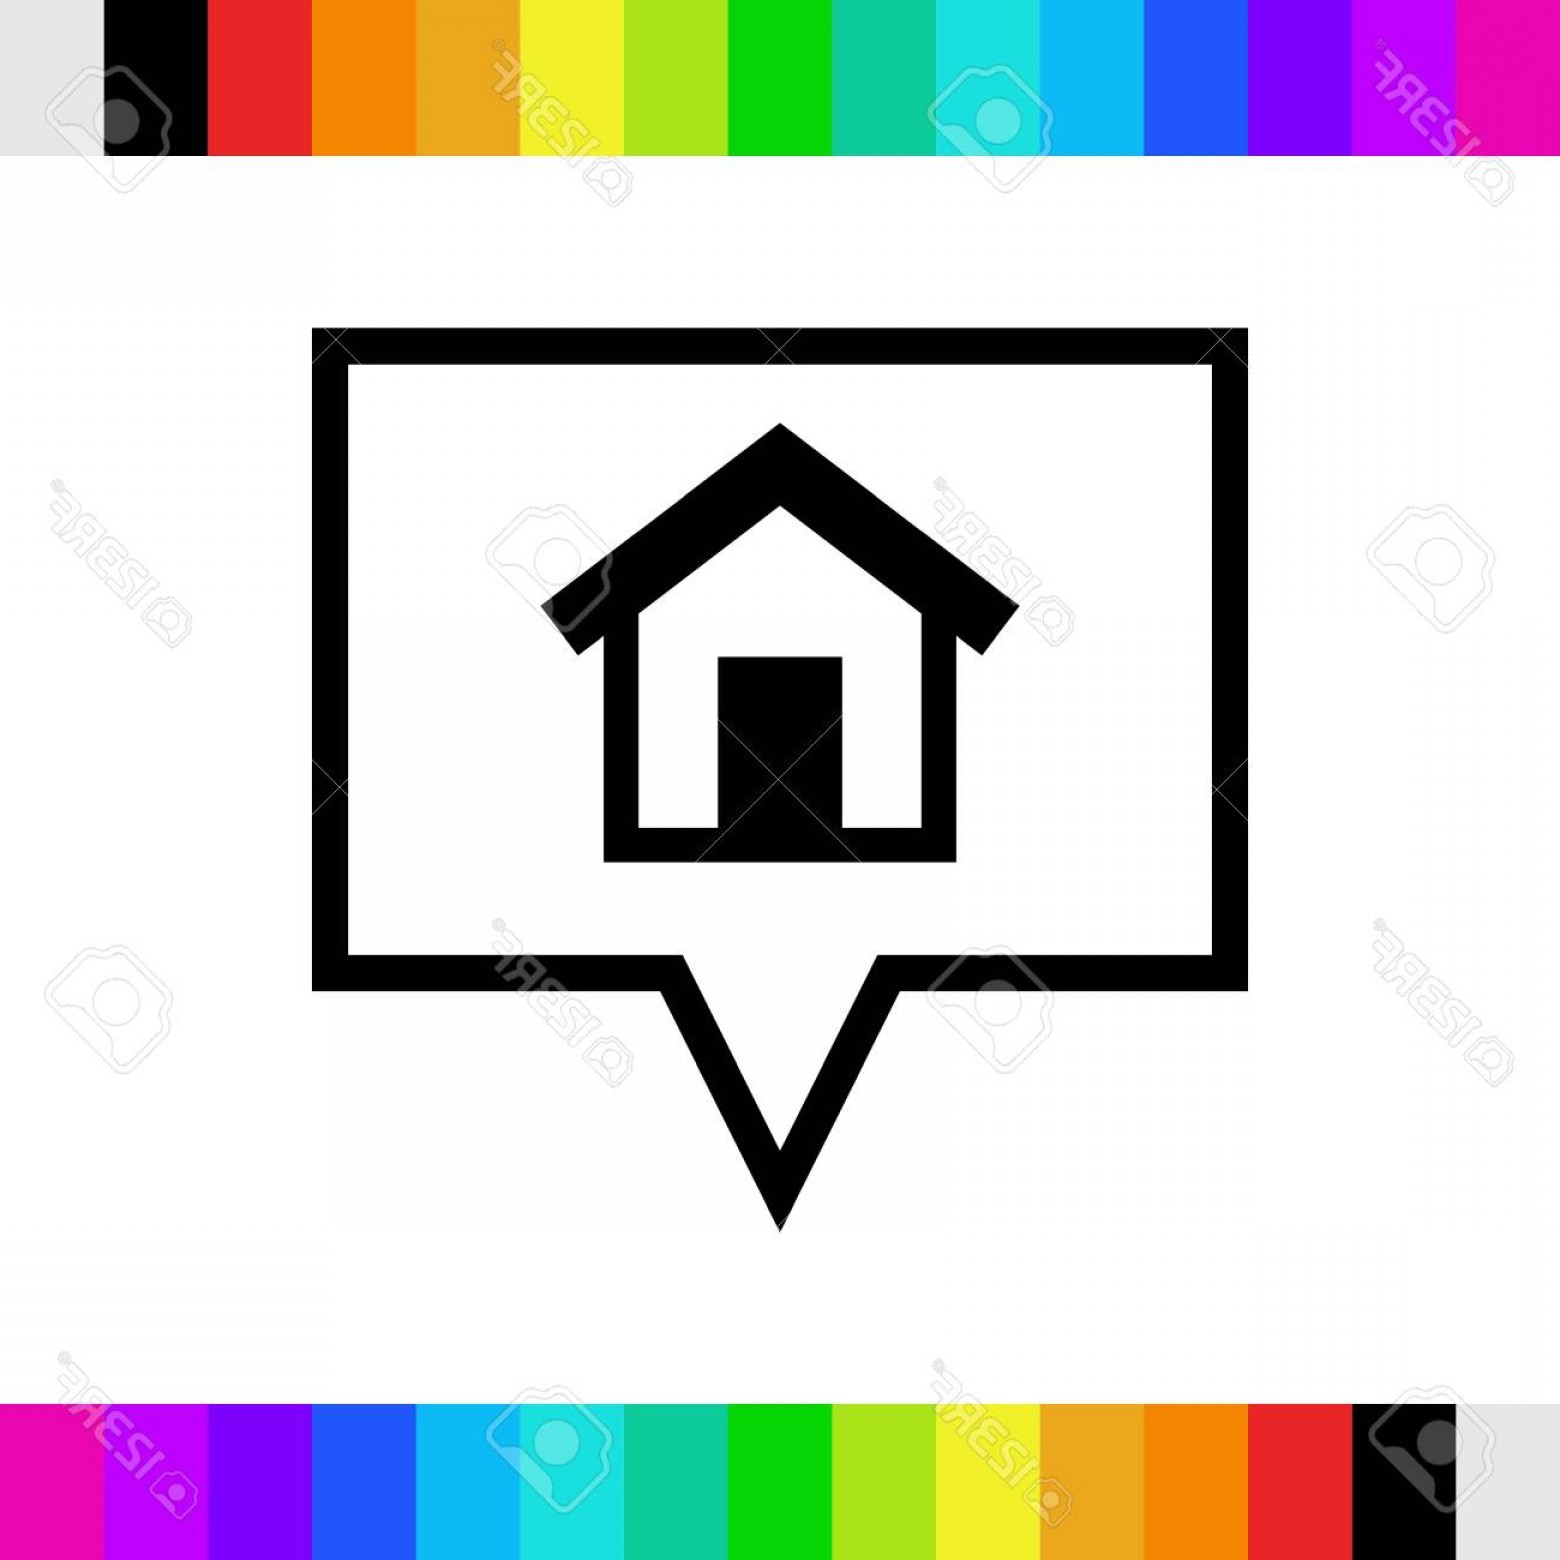 In Icon Stock Vector: Photostock Vector Home Icon Stock Vector Illustration Flat Design